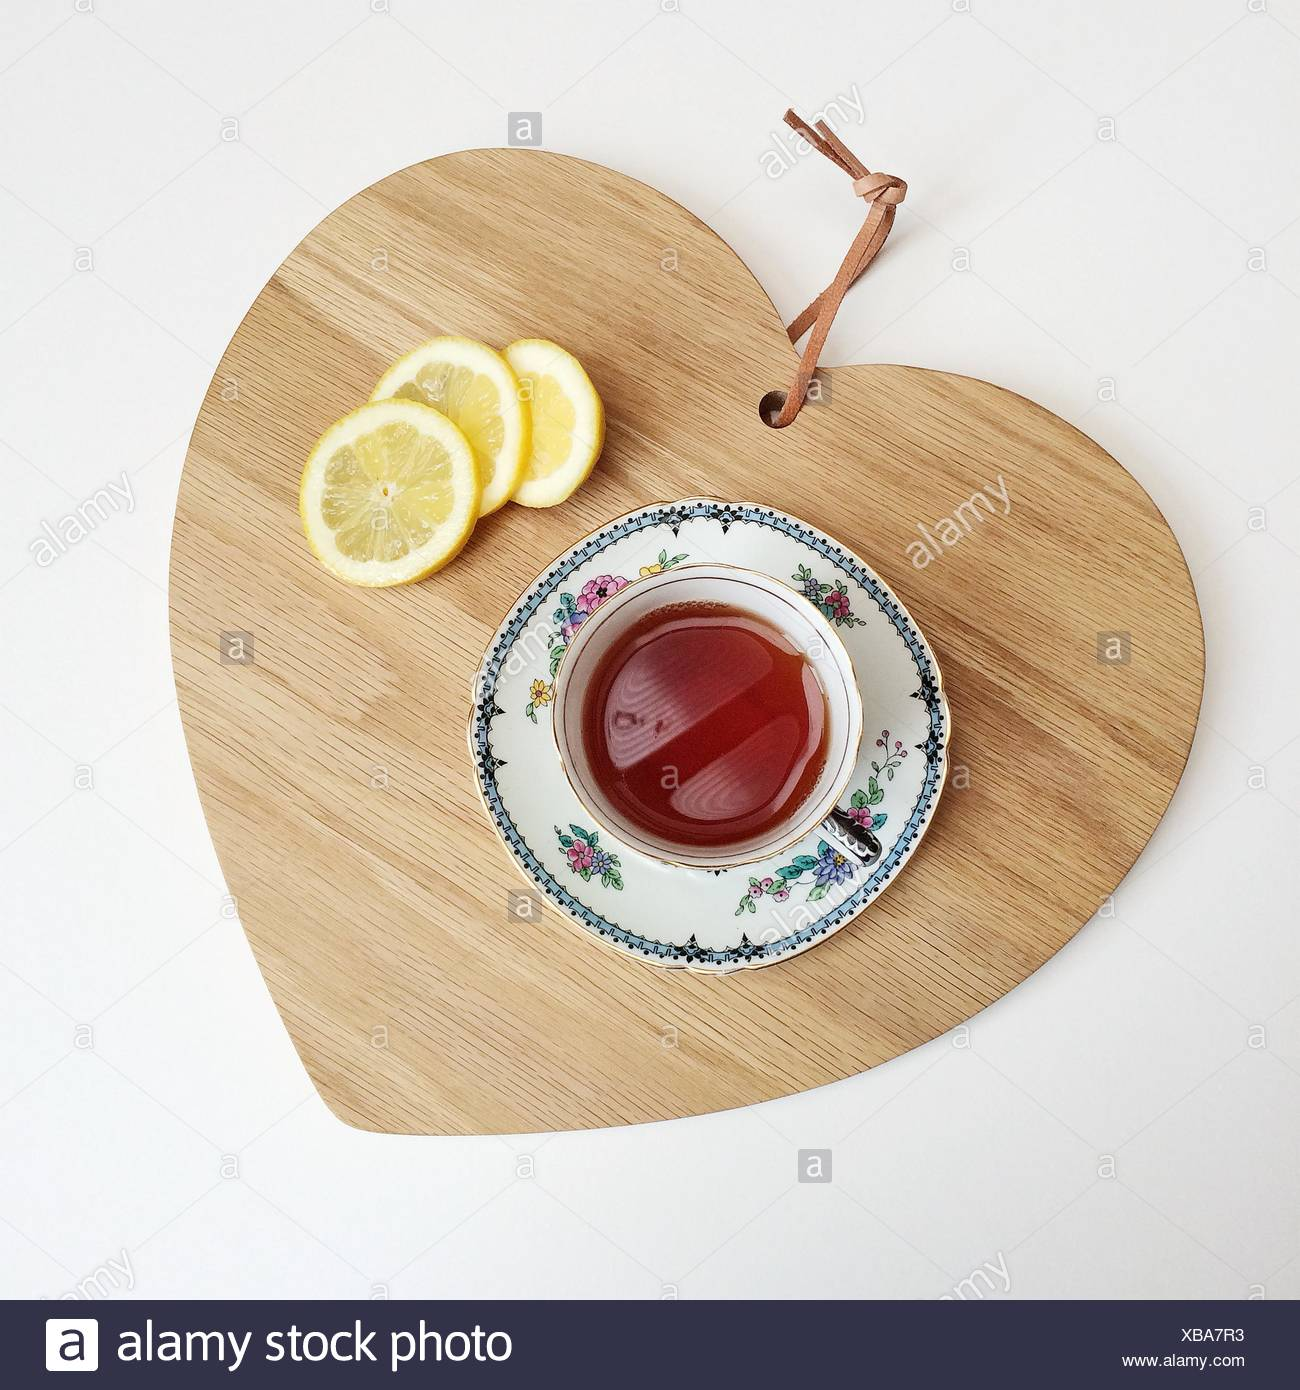 Tea and lemon slices on a chopping board Stock Photo